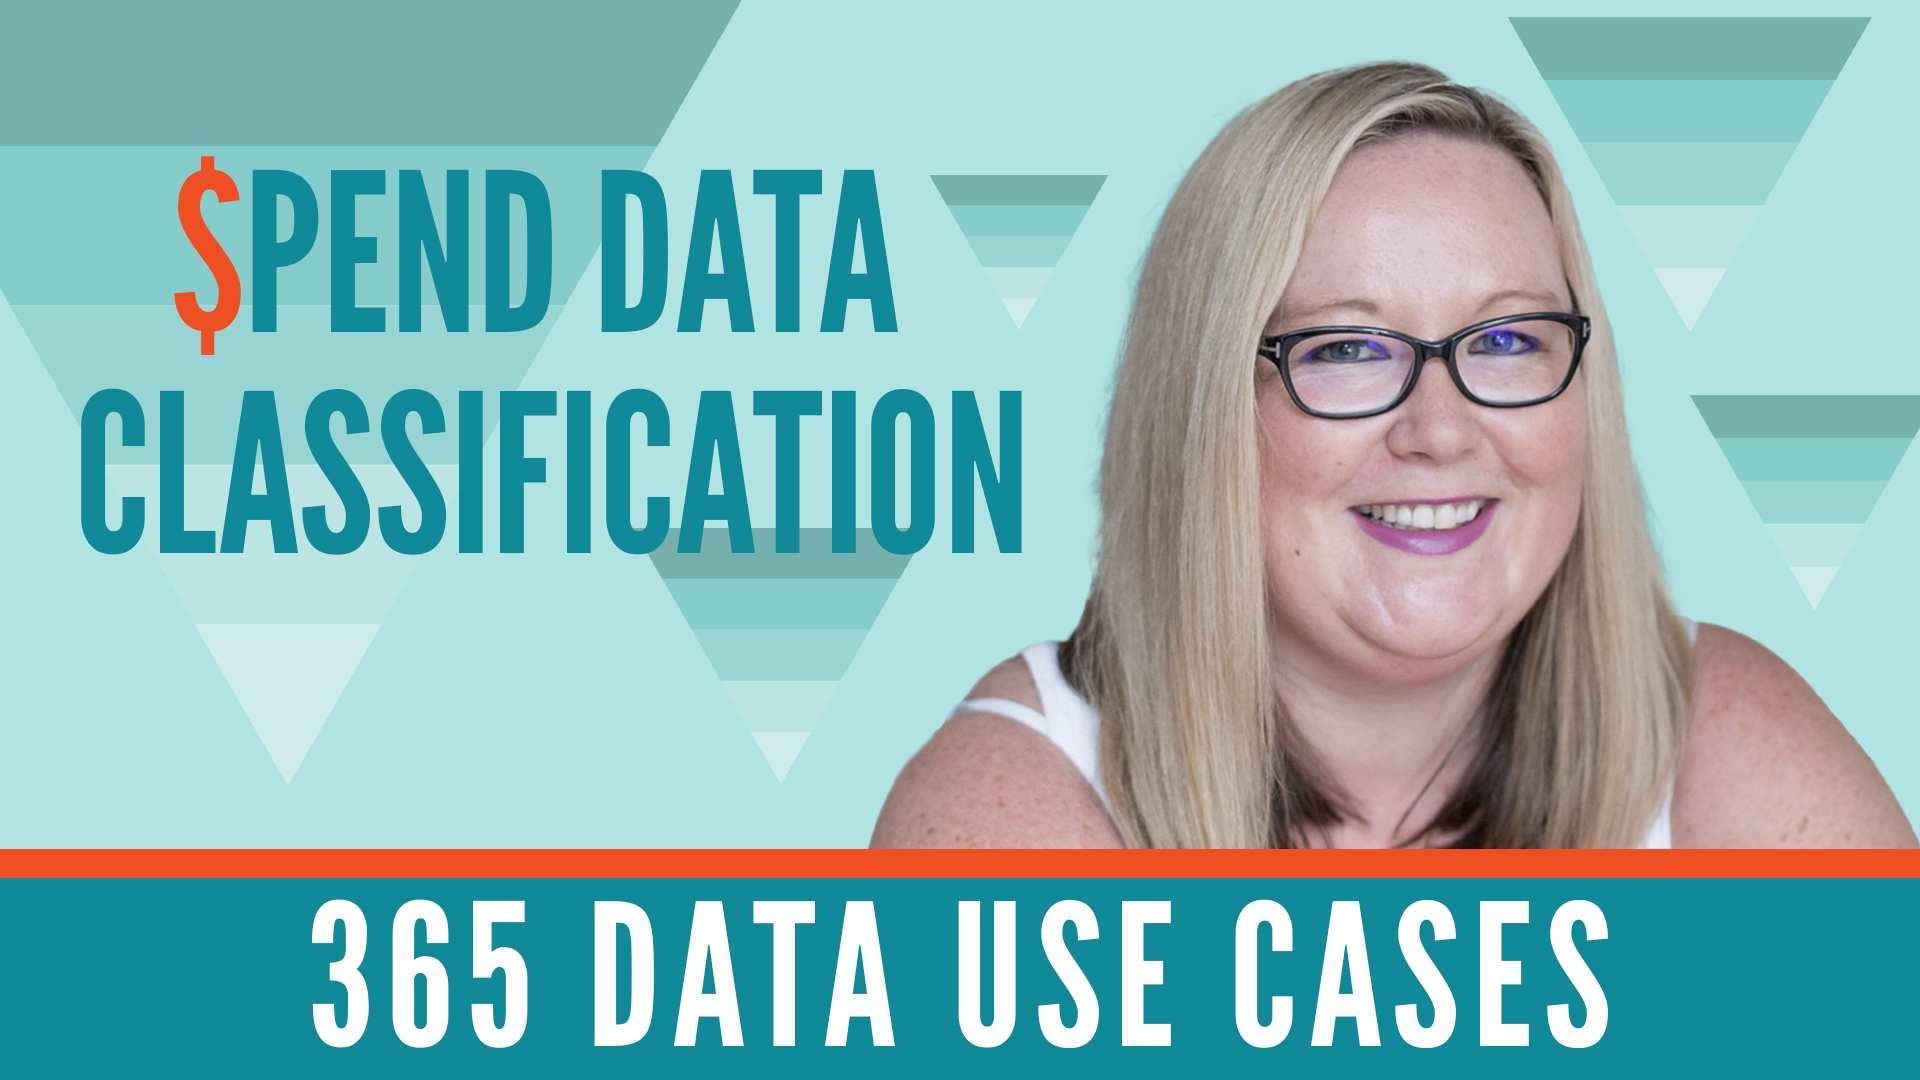 365 Data Use Cases: Data Science and Spend Data Classification with Susan